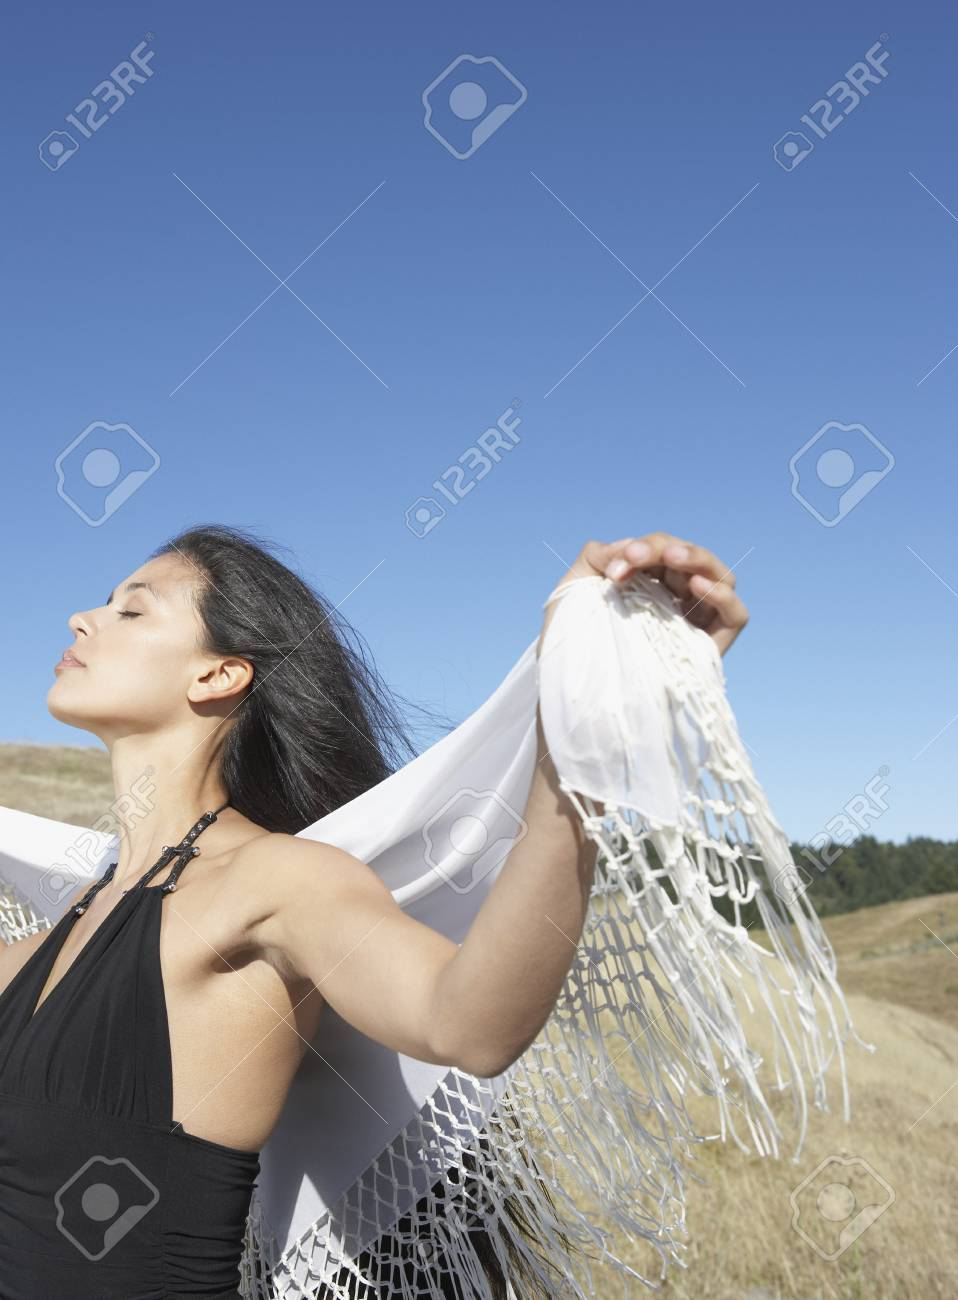 Sensual woman standing in countryside Stock Photo - 16071401